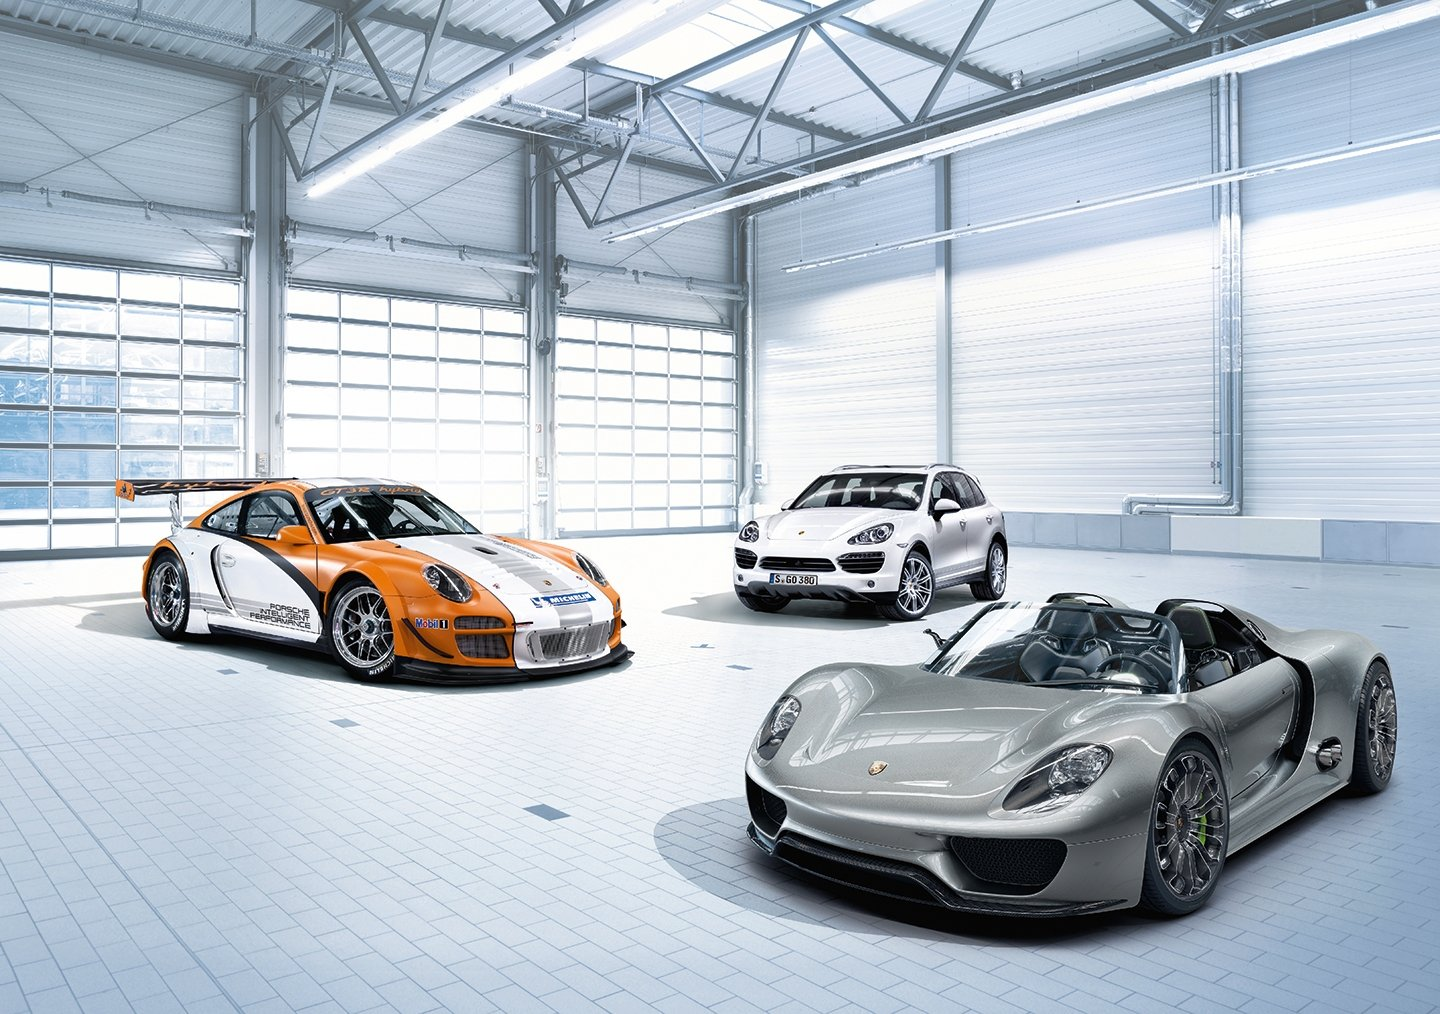 Porsche pictures of porsches : What do these three Porsches have in common?   FLATSIXES